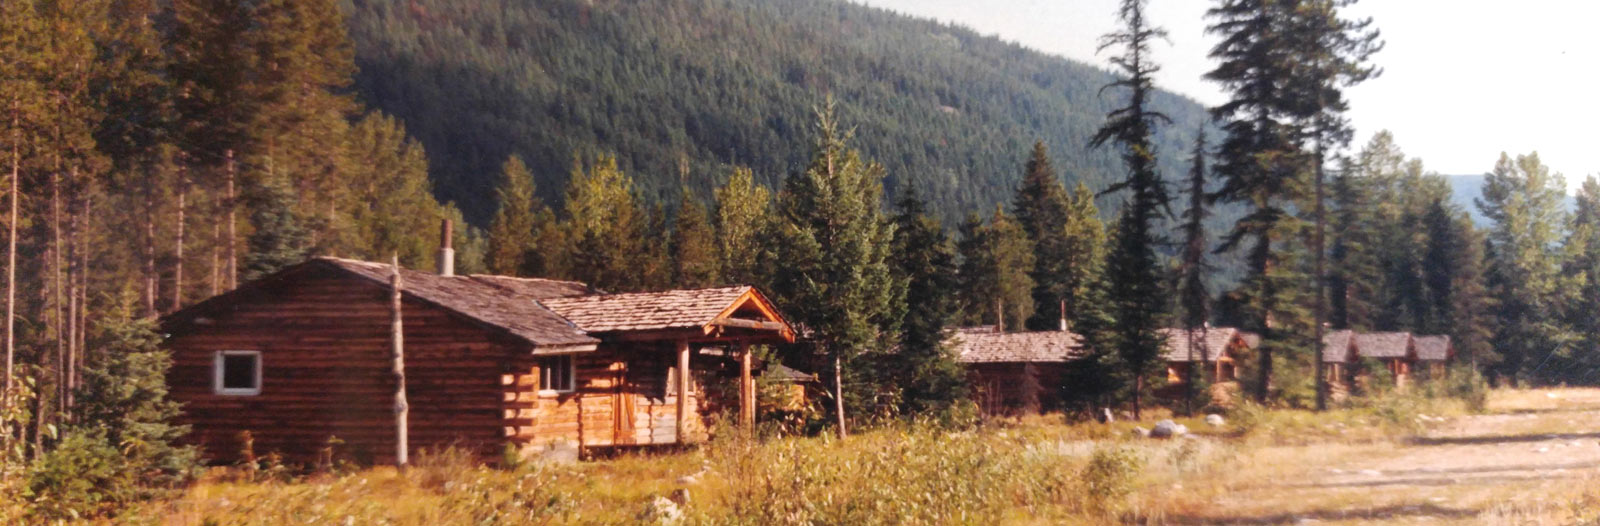 Rendell Creek Ranch log cabins.